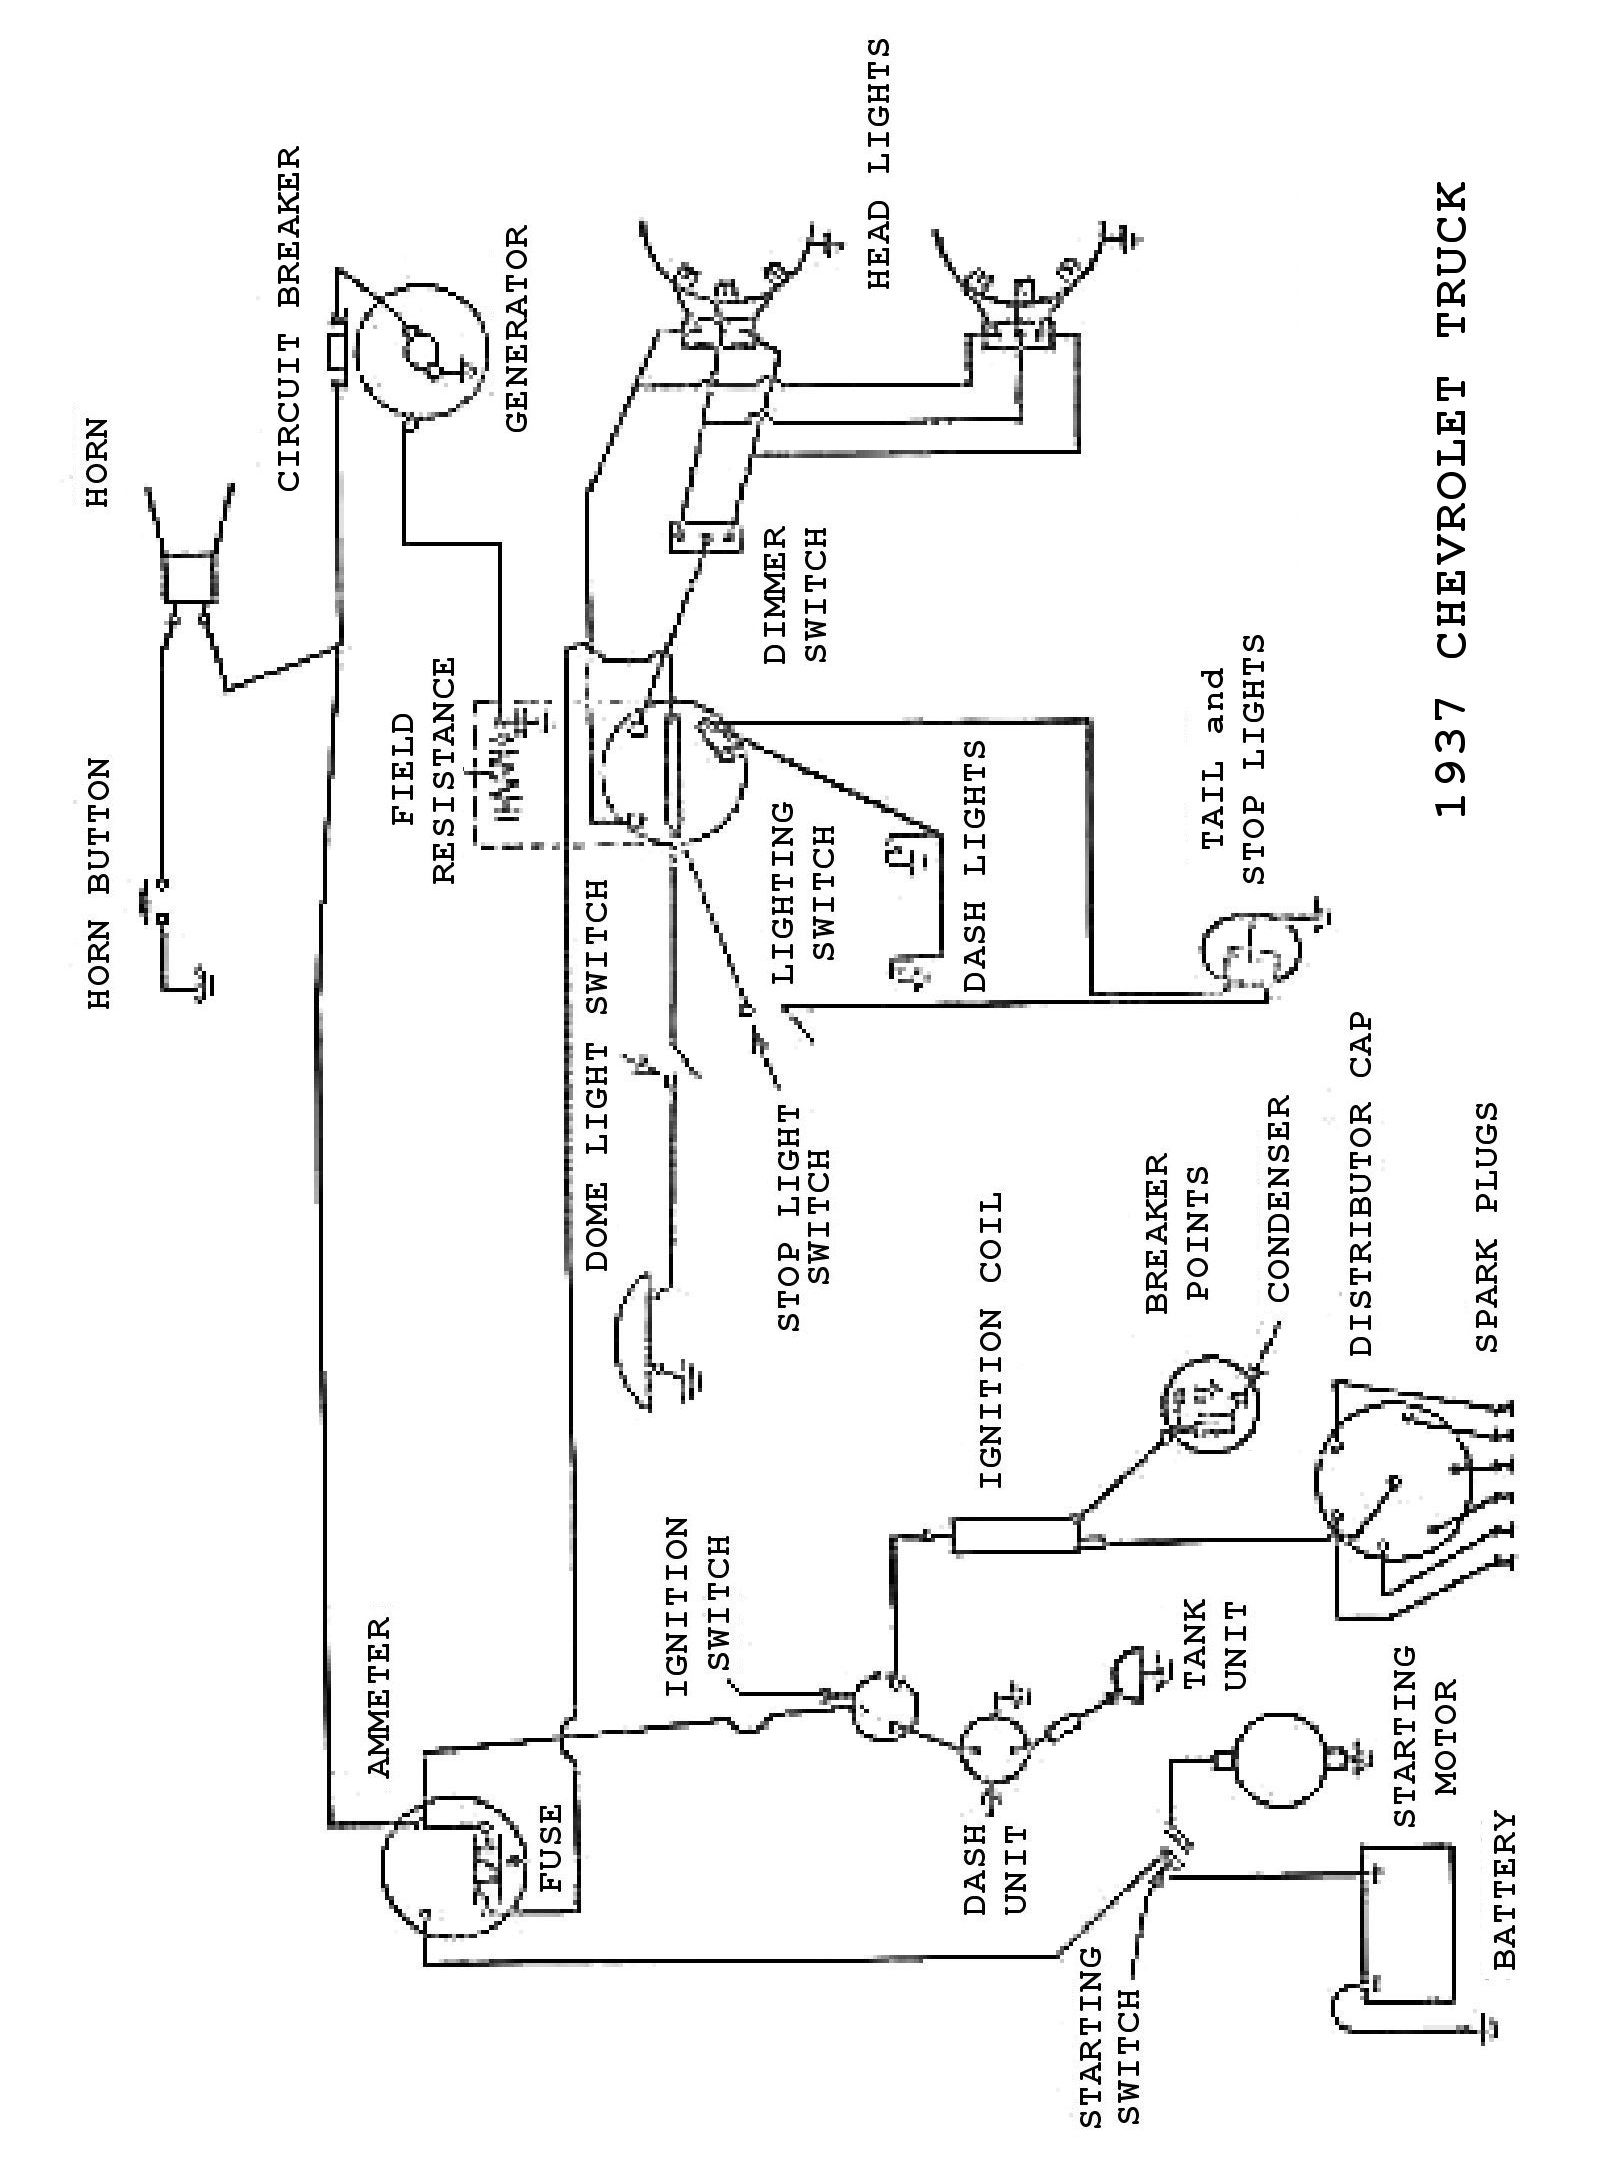 37truck wiring diagram for a 1937 chevy truck wiring diagram simonand 66 Chevy Headlight Switch Wiring Diagram at reclaimingppi.co